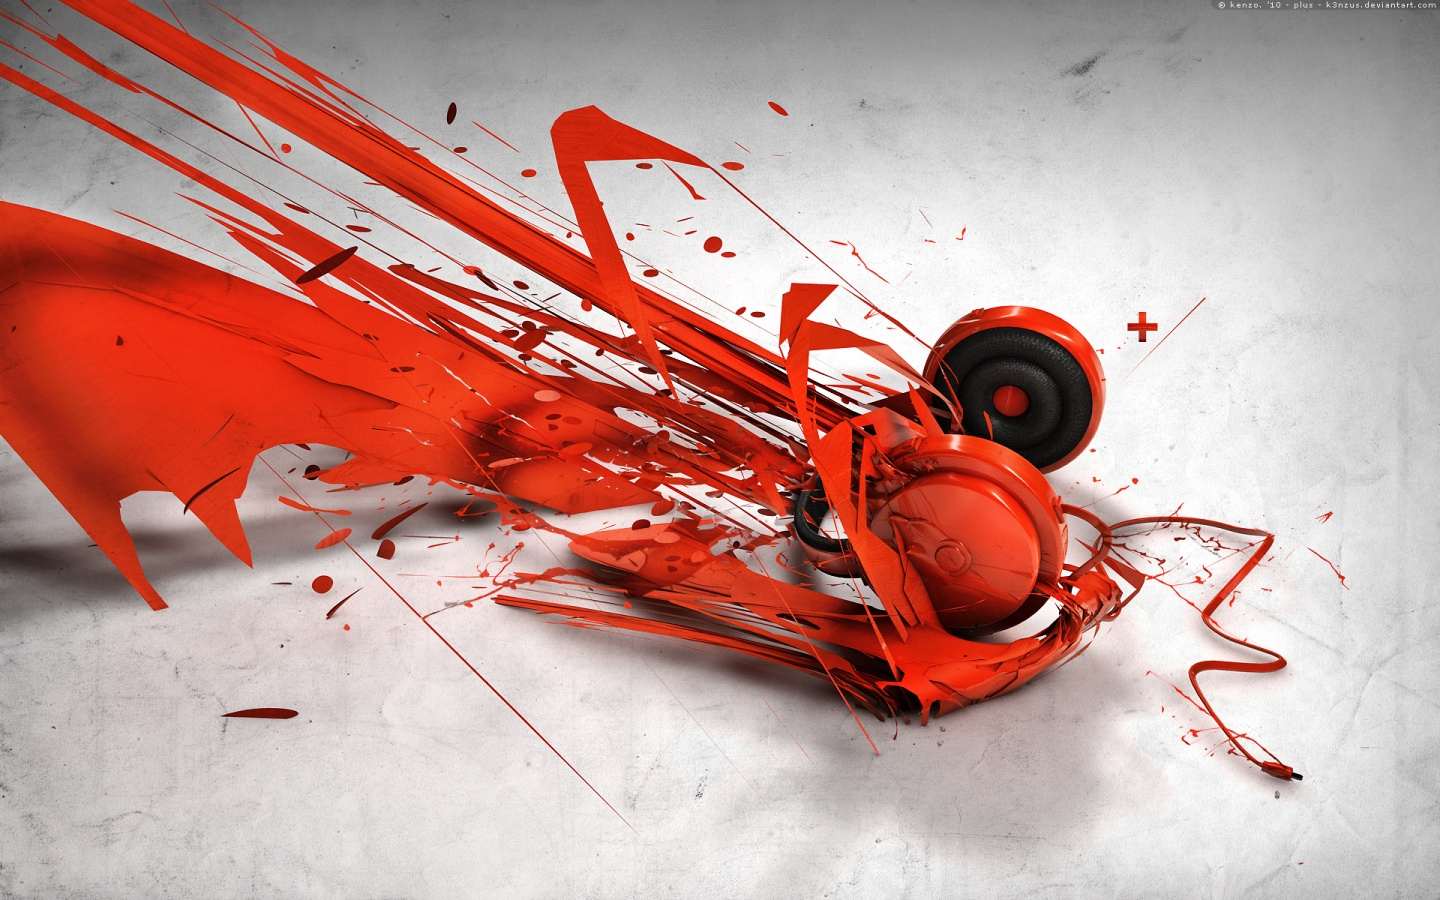 Abstract Music Headphones Wallpapers In Jpg Format For Free Download